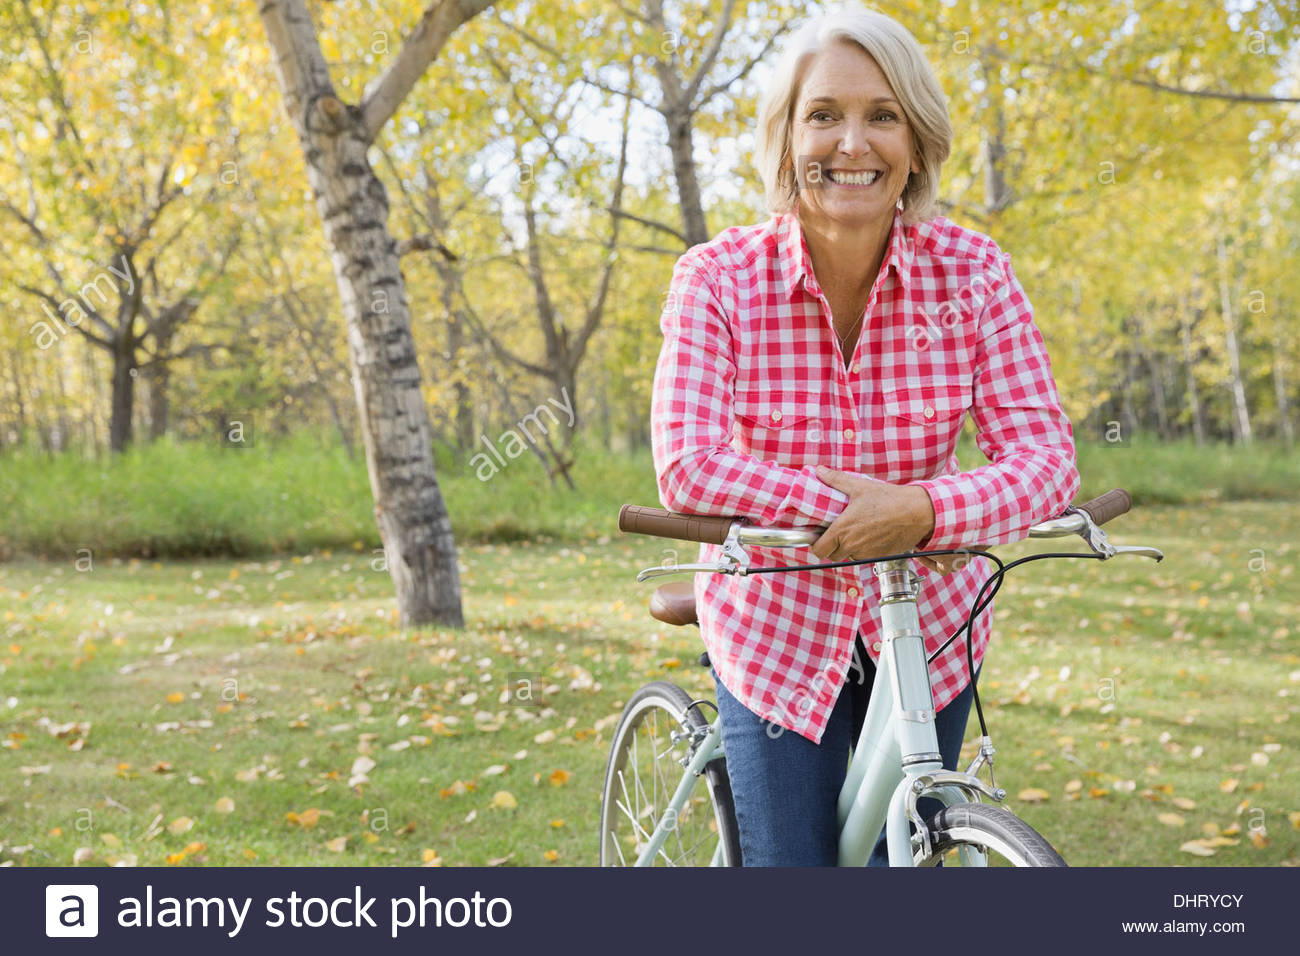 Smiling woman leaning on bicycle - Stock Image